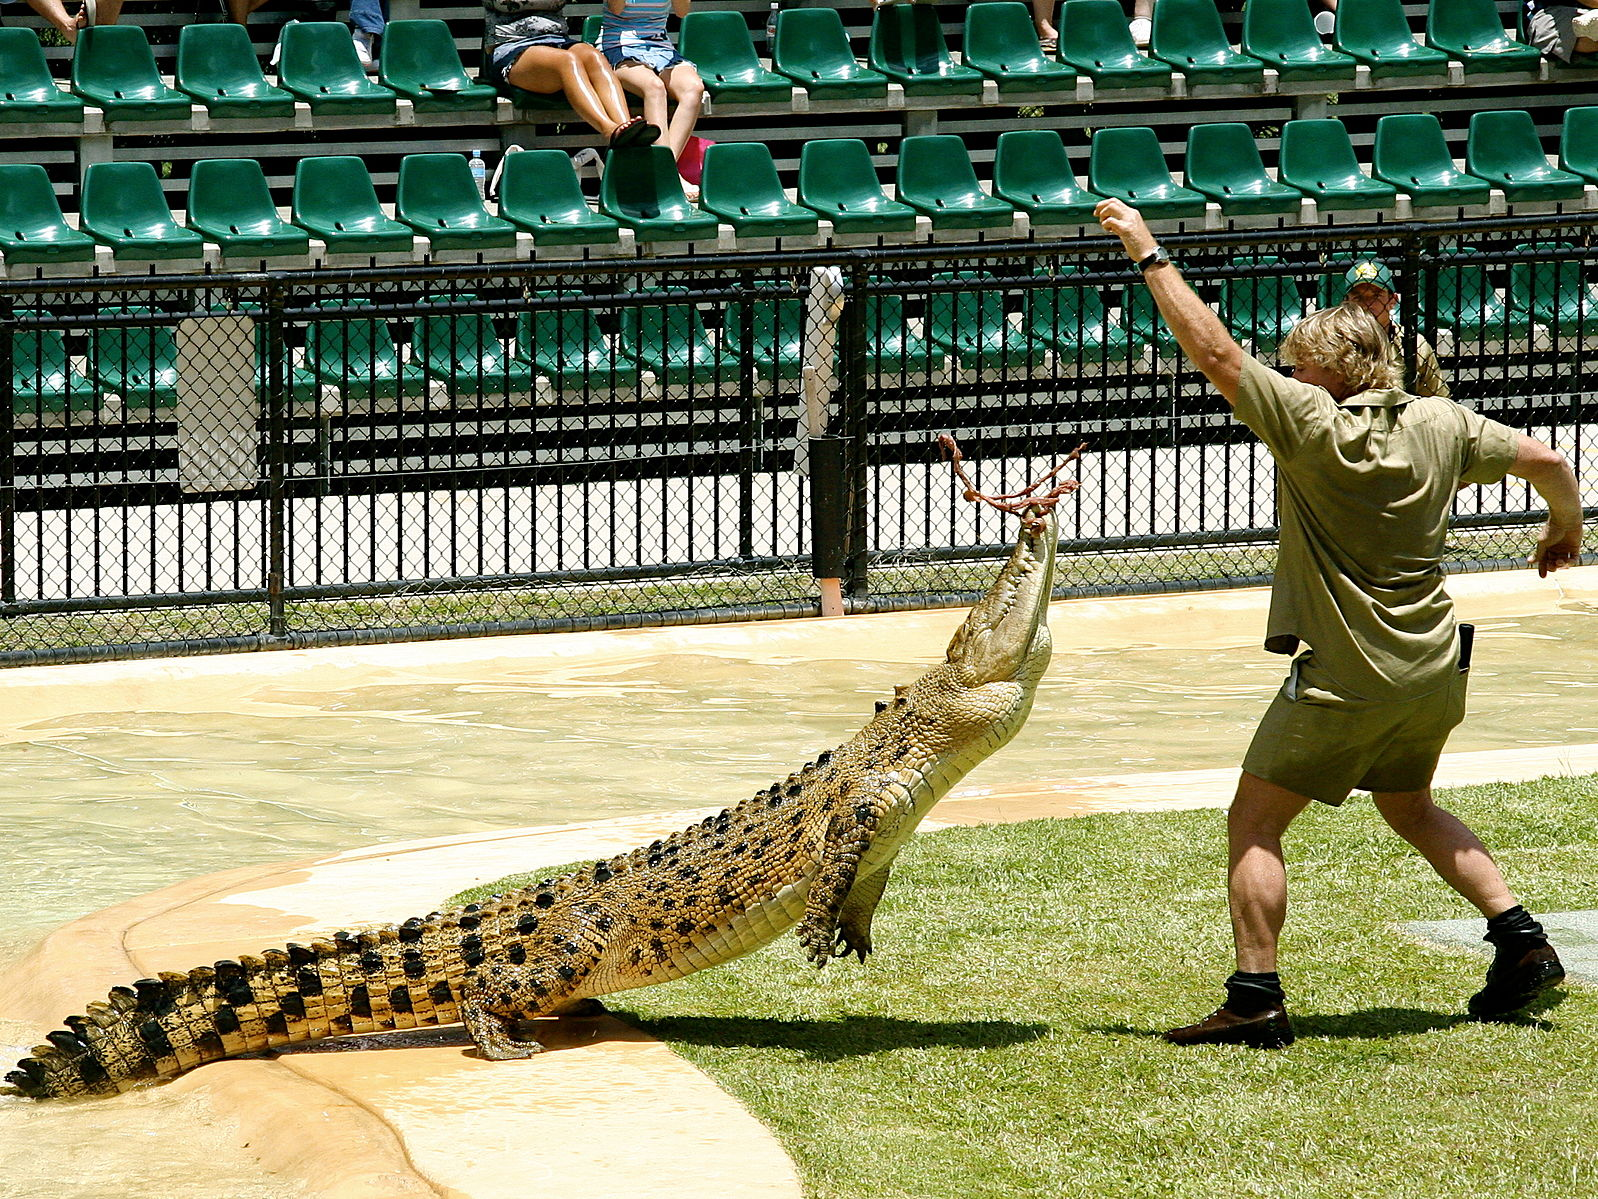 Steve Irwin S Birthday Doodle Turns Into An Ethical Debate Est 1933